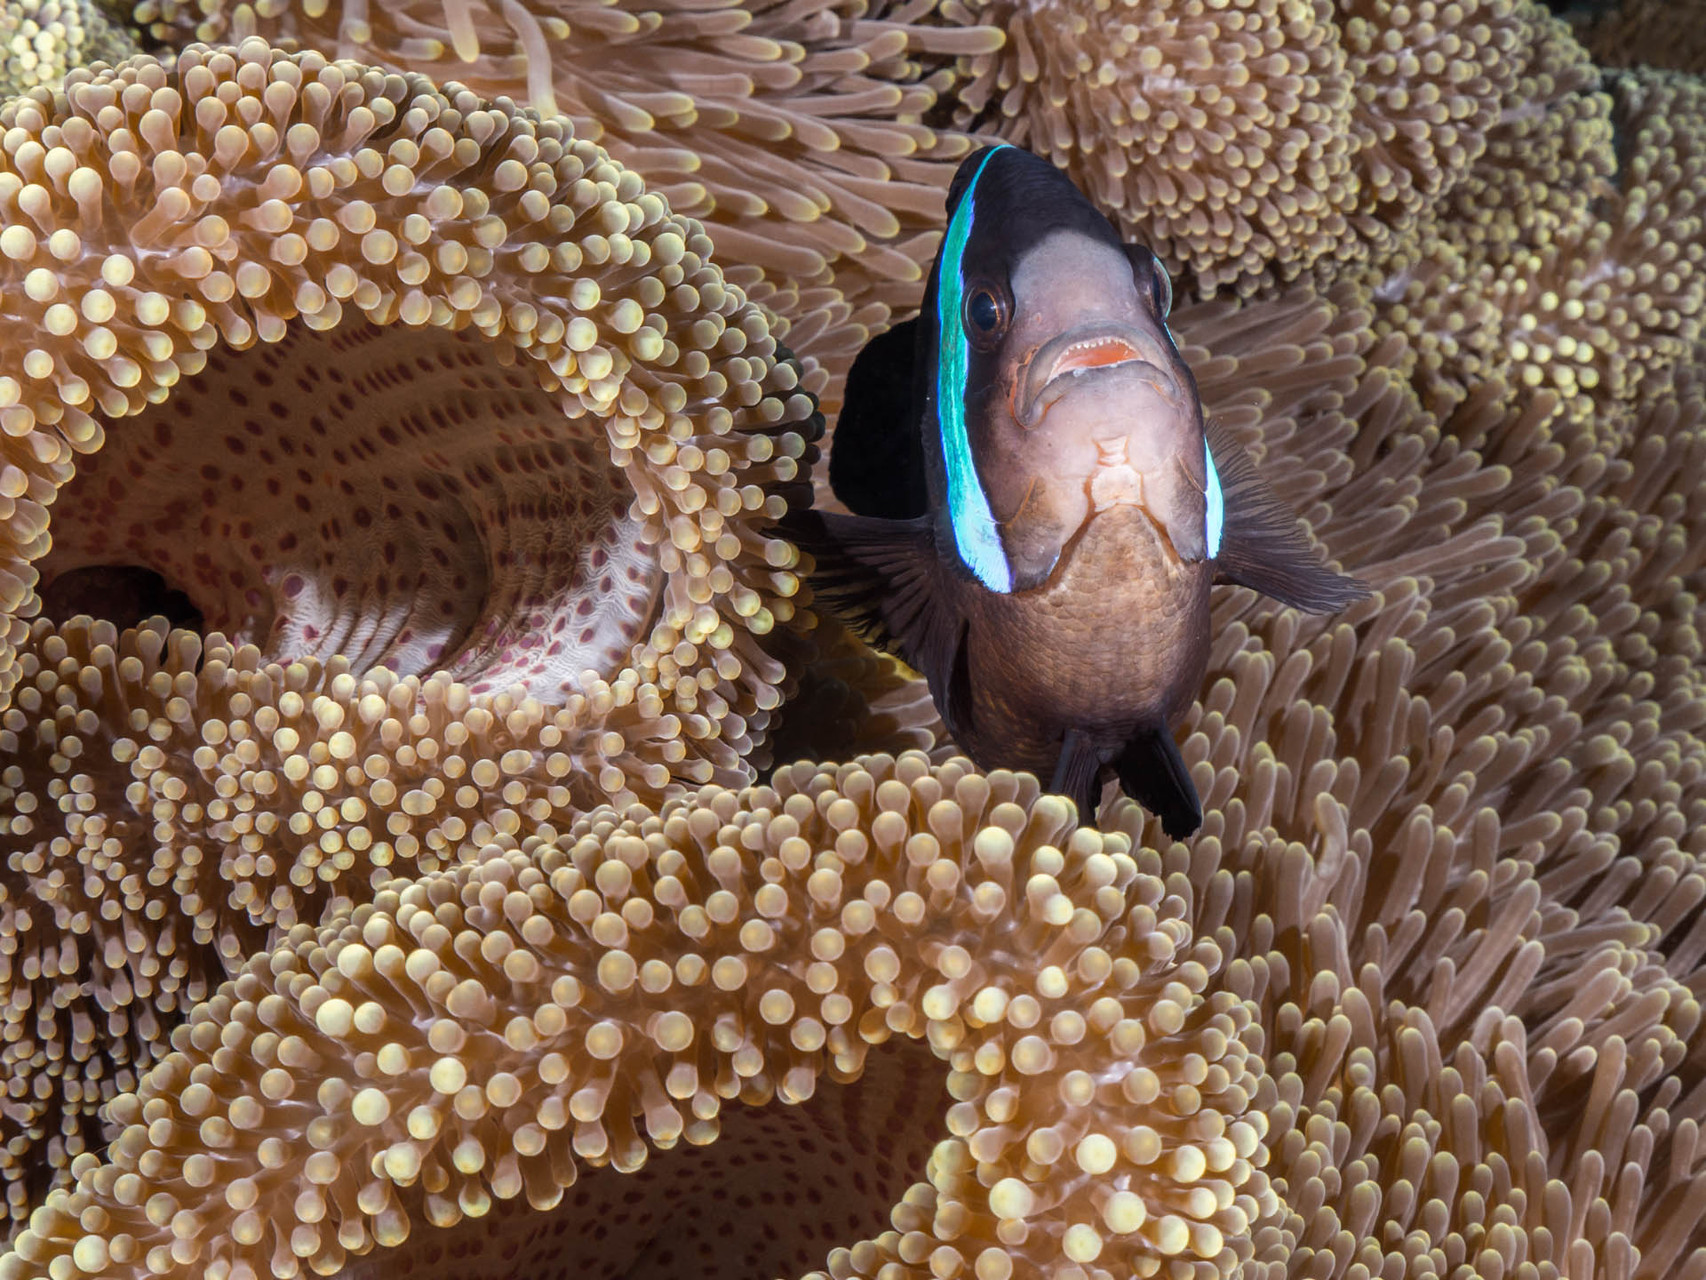 Saddleback anemonefish (Amphiprion polymnus) on Haddon´s carpet anemone, Green Island